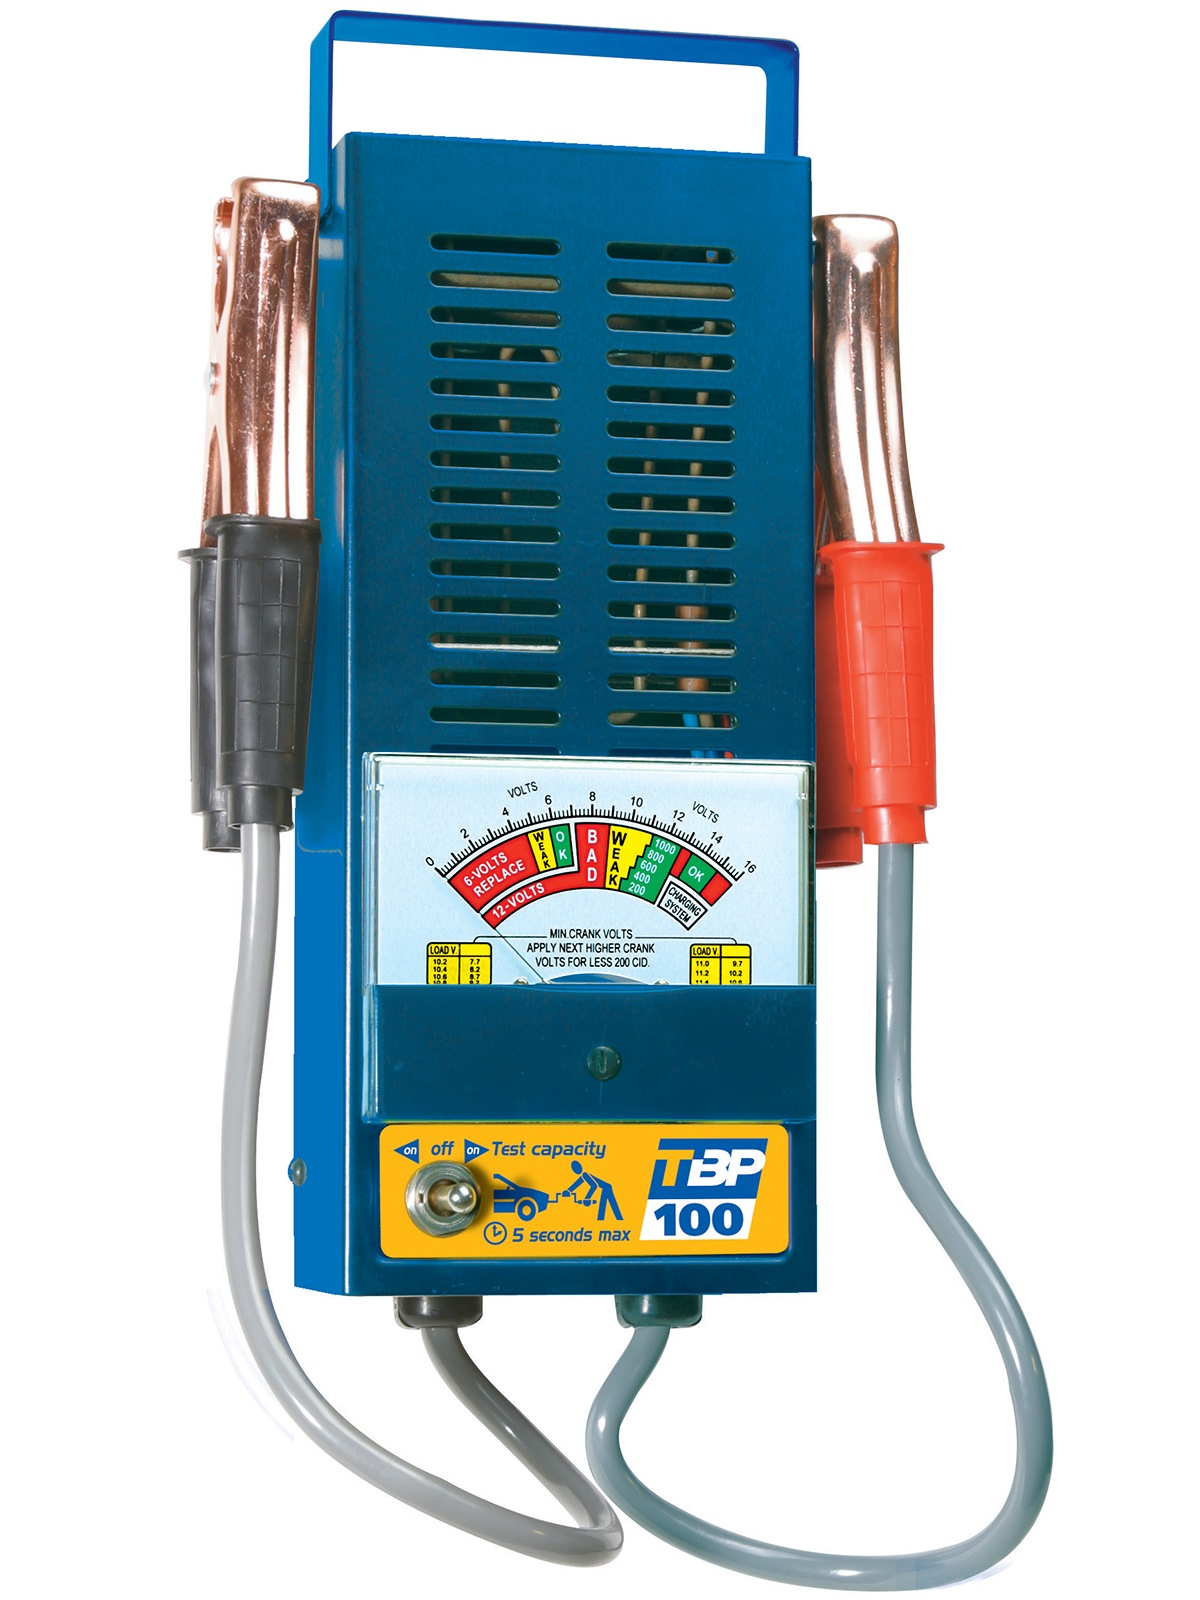 Gys Traditional Battery Tester TBP100